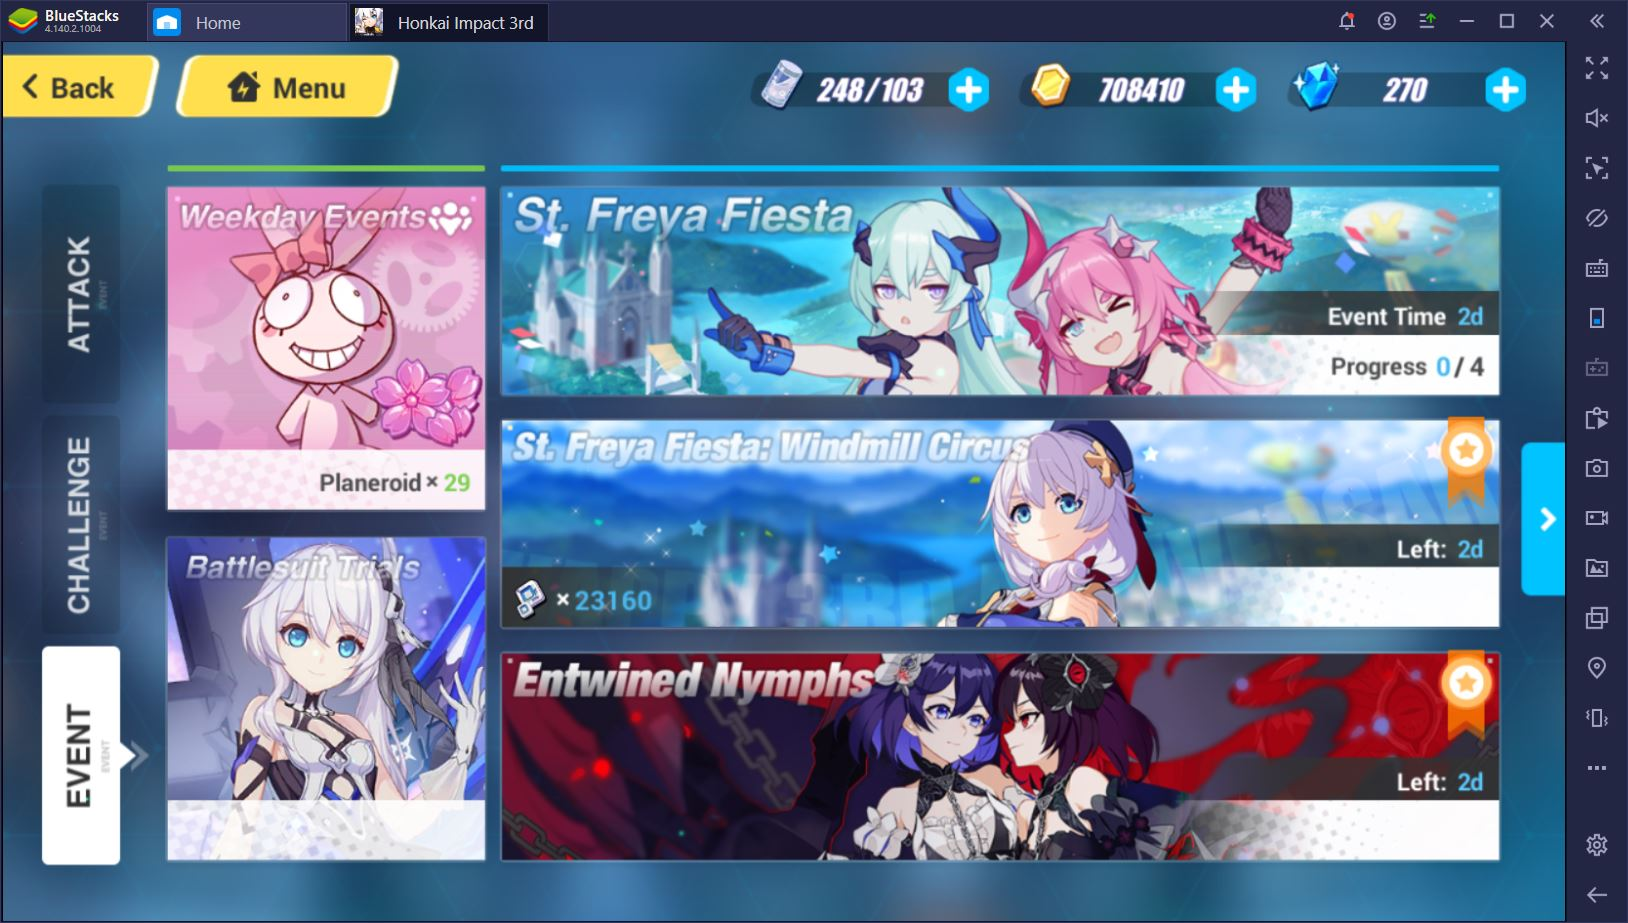 Honkai Impact 3rd on PC: How to Ace Weekday and Limited Events